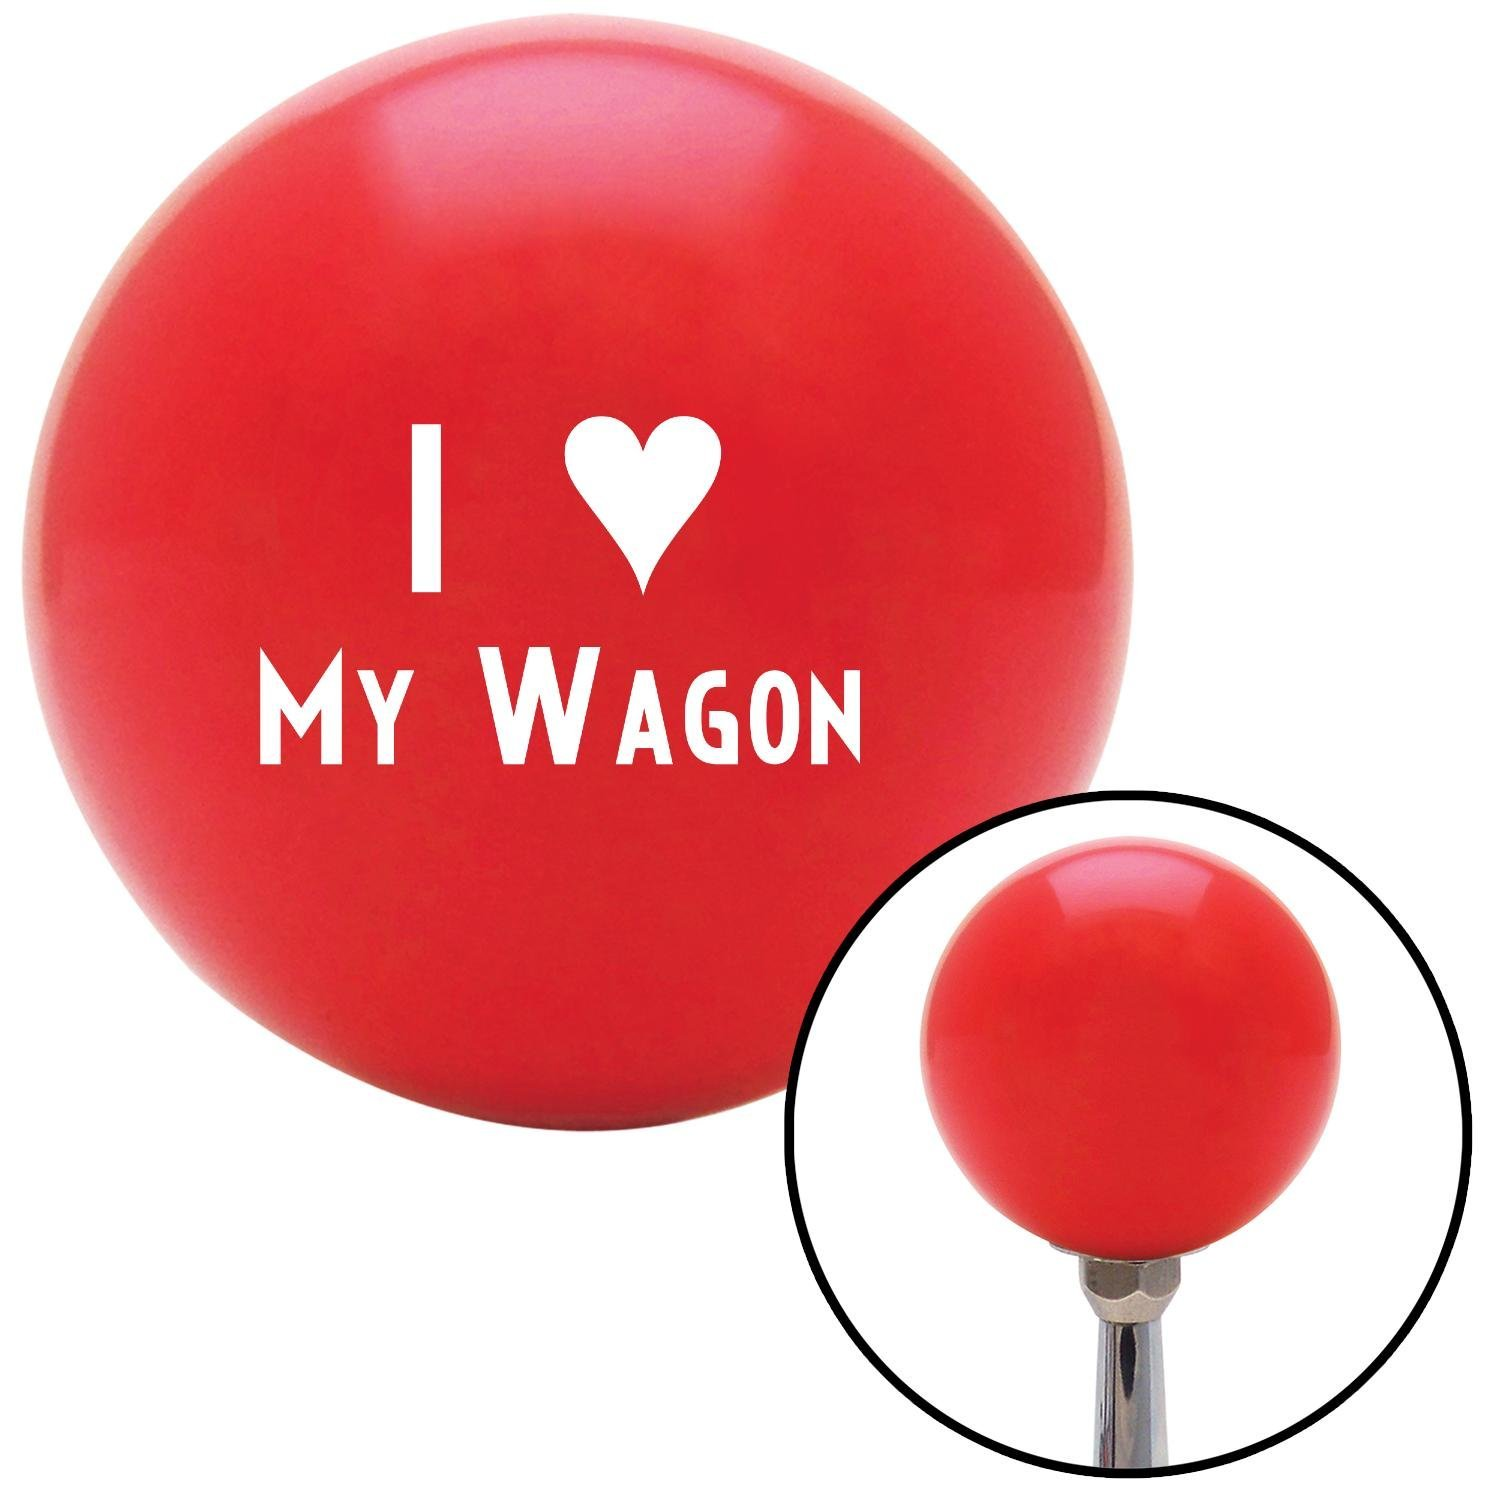 American Shifter 96871 Red Shift Knob with M16 x 1.5 Insert White I 3 My Wagon